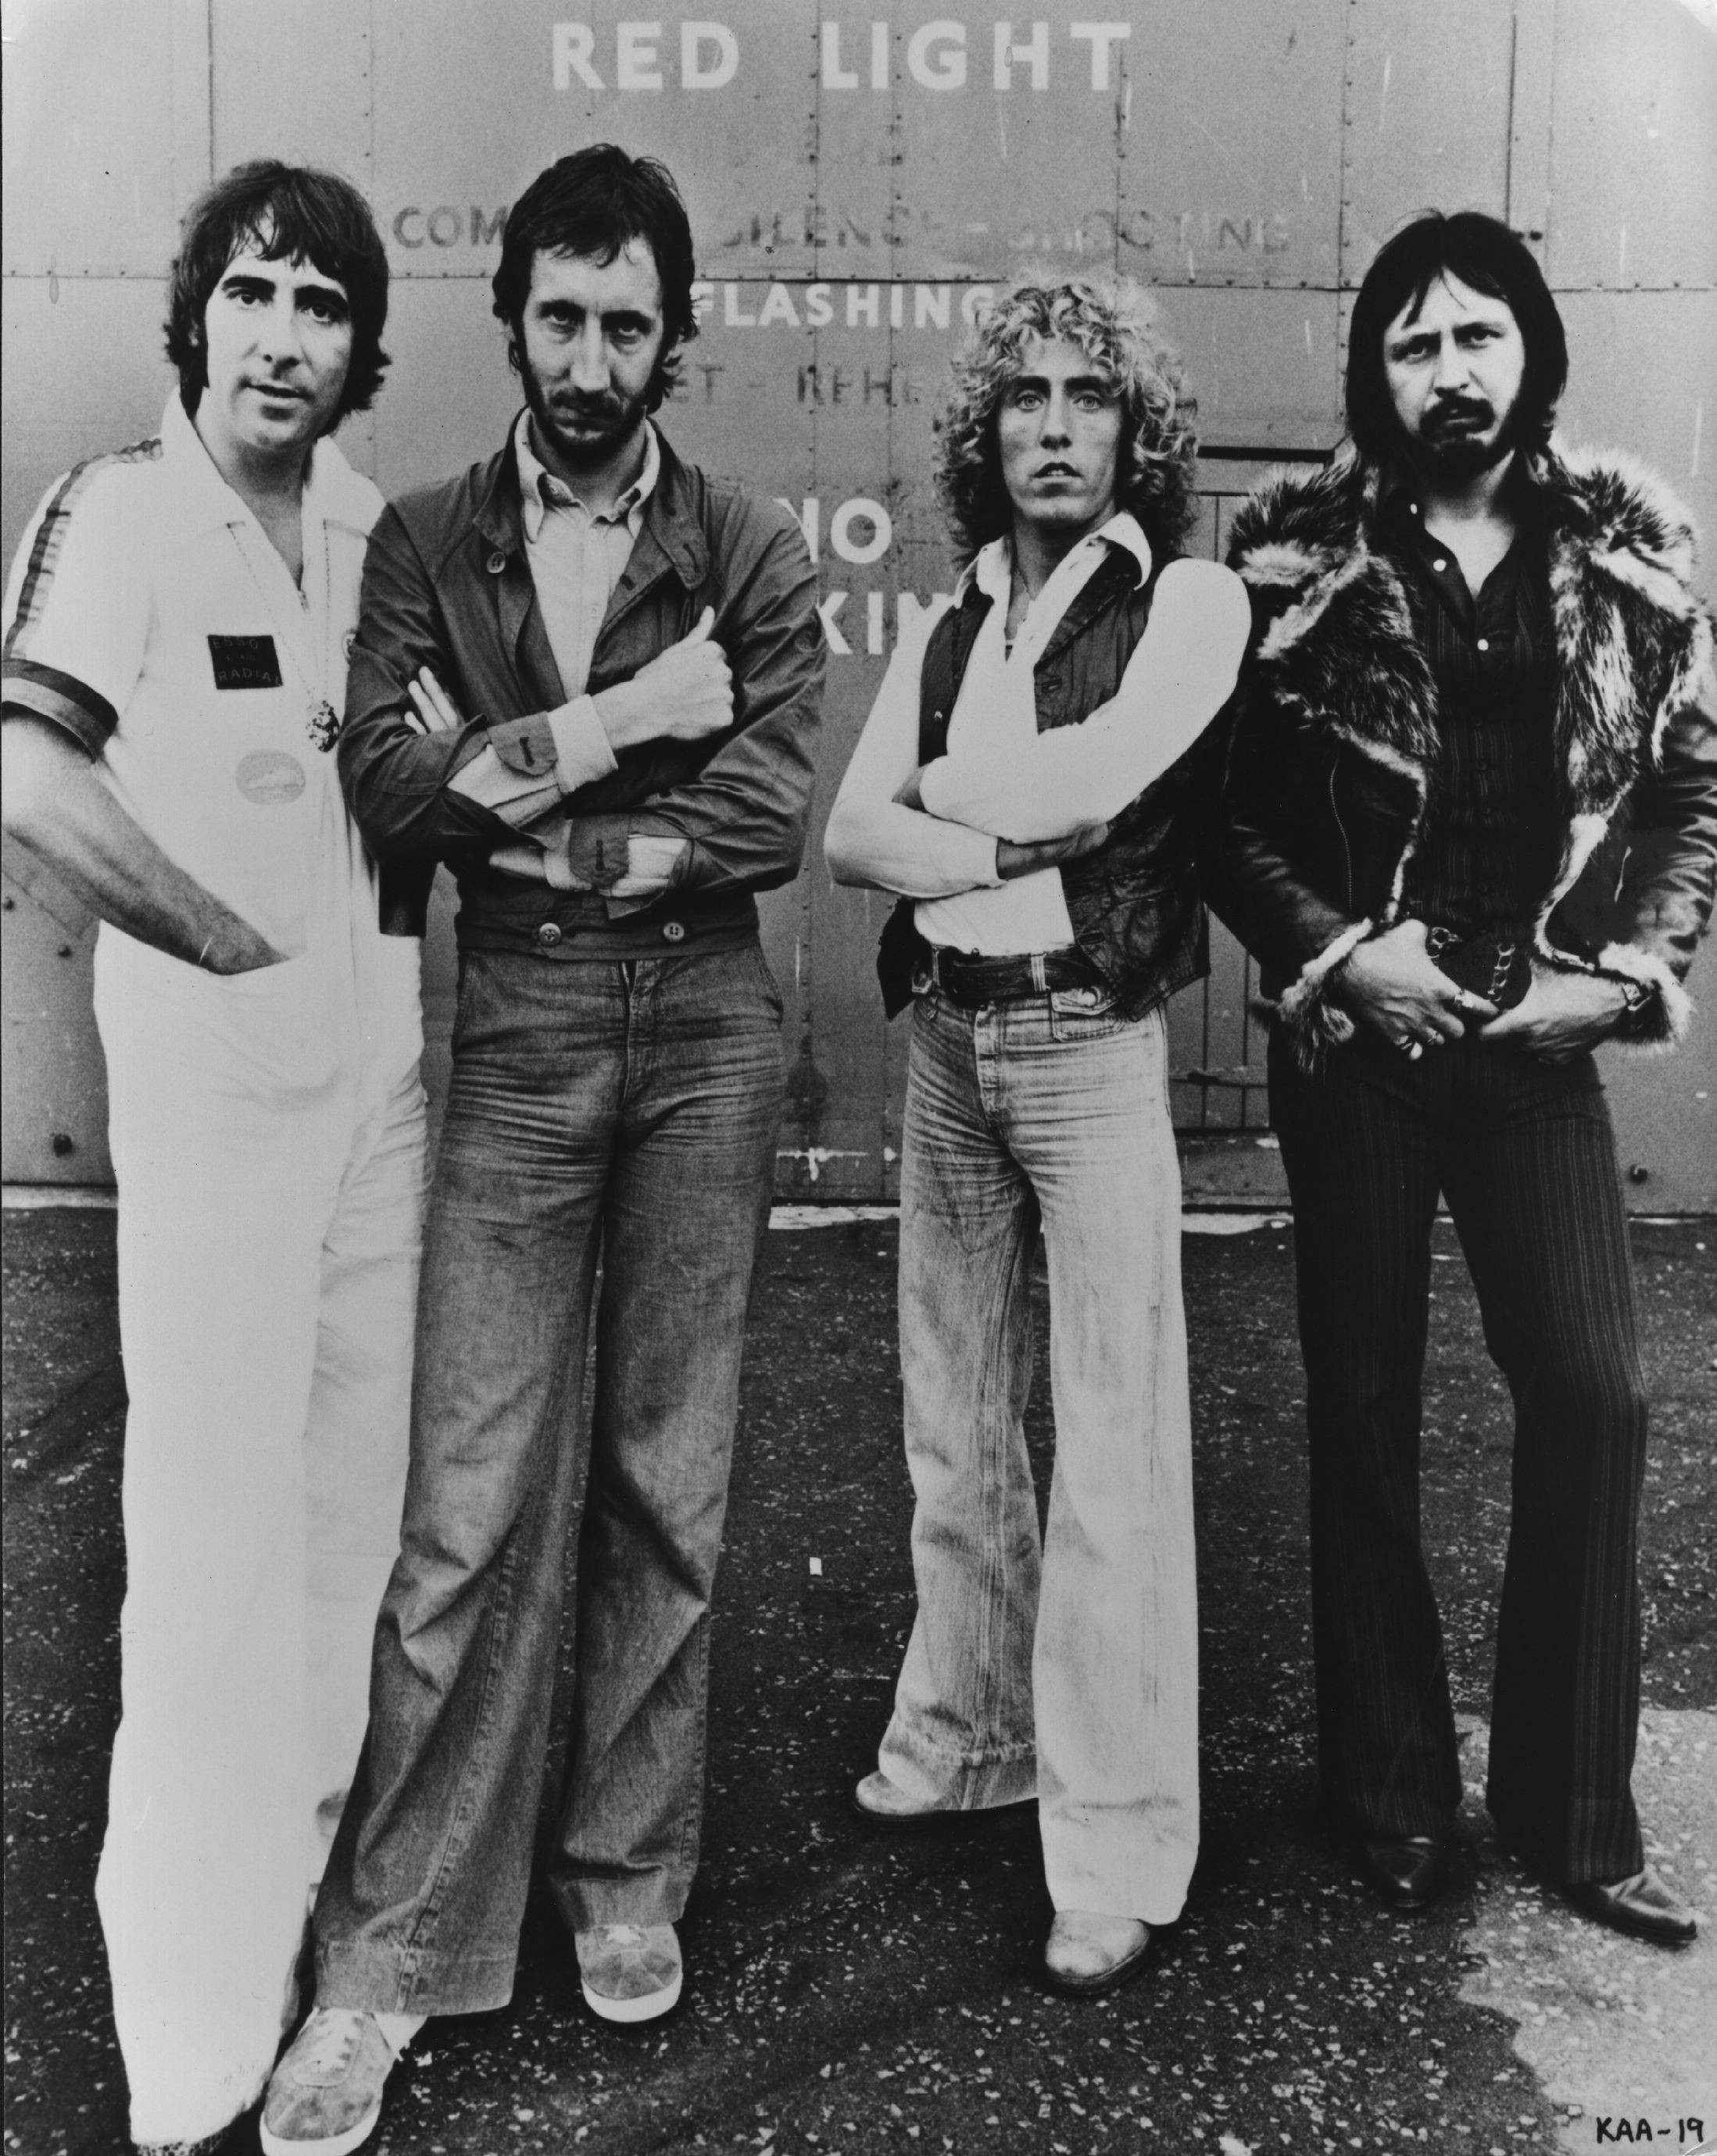 A formação clássica do The Who, com Keith Moon, Pete Townshend, Roger Daltrey e John Entwistle (Foto: Getty Images)